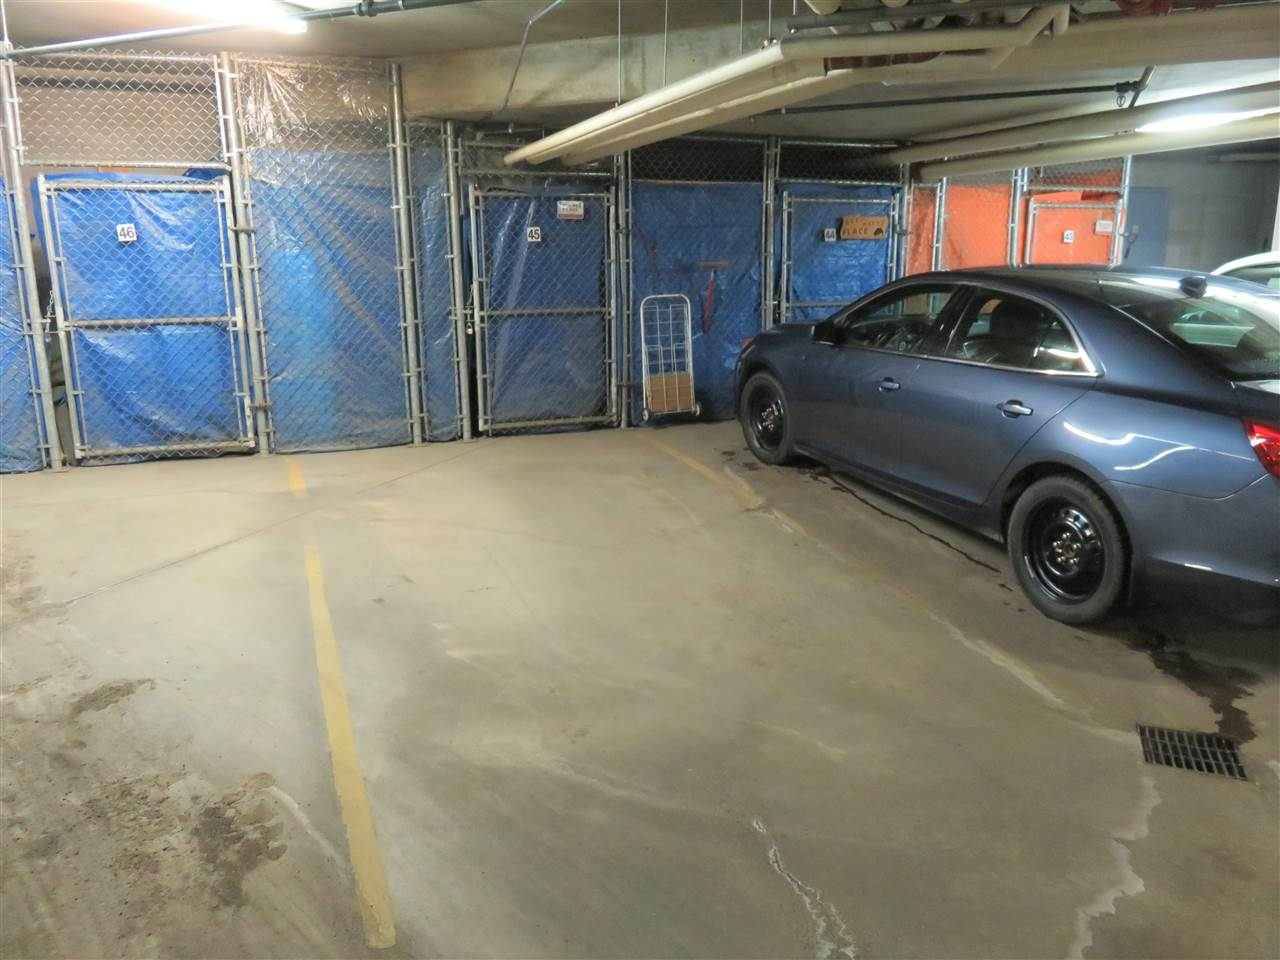 Here is the parking stall #45 for your unit that is located right across from the elevators in the underground heated parking! :)